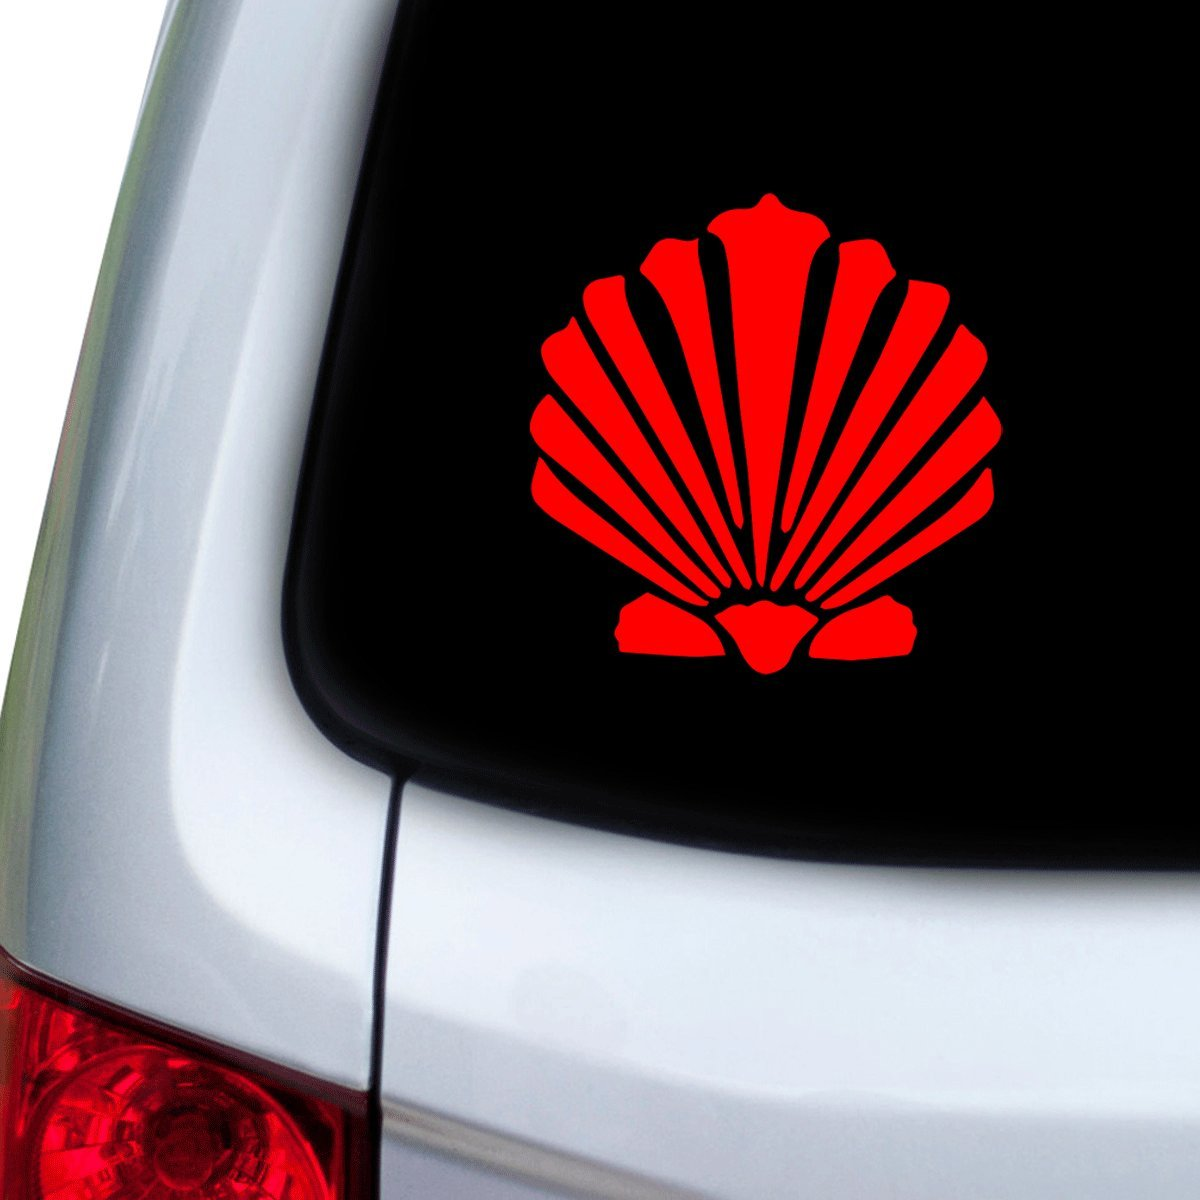 Doors Hoods Red StickAny Car and Auto Decal Series SeaShell Sticker for Windows